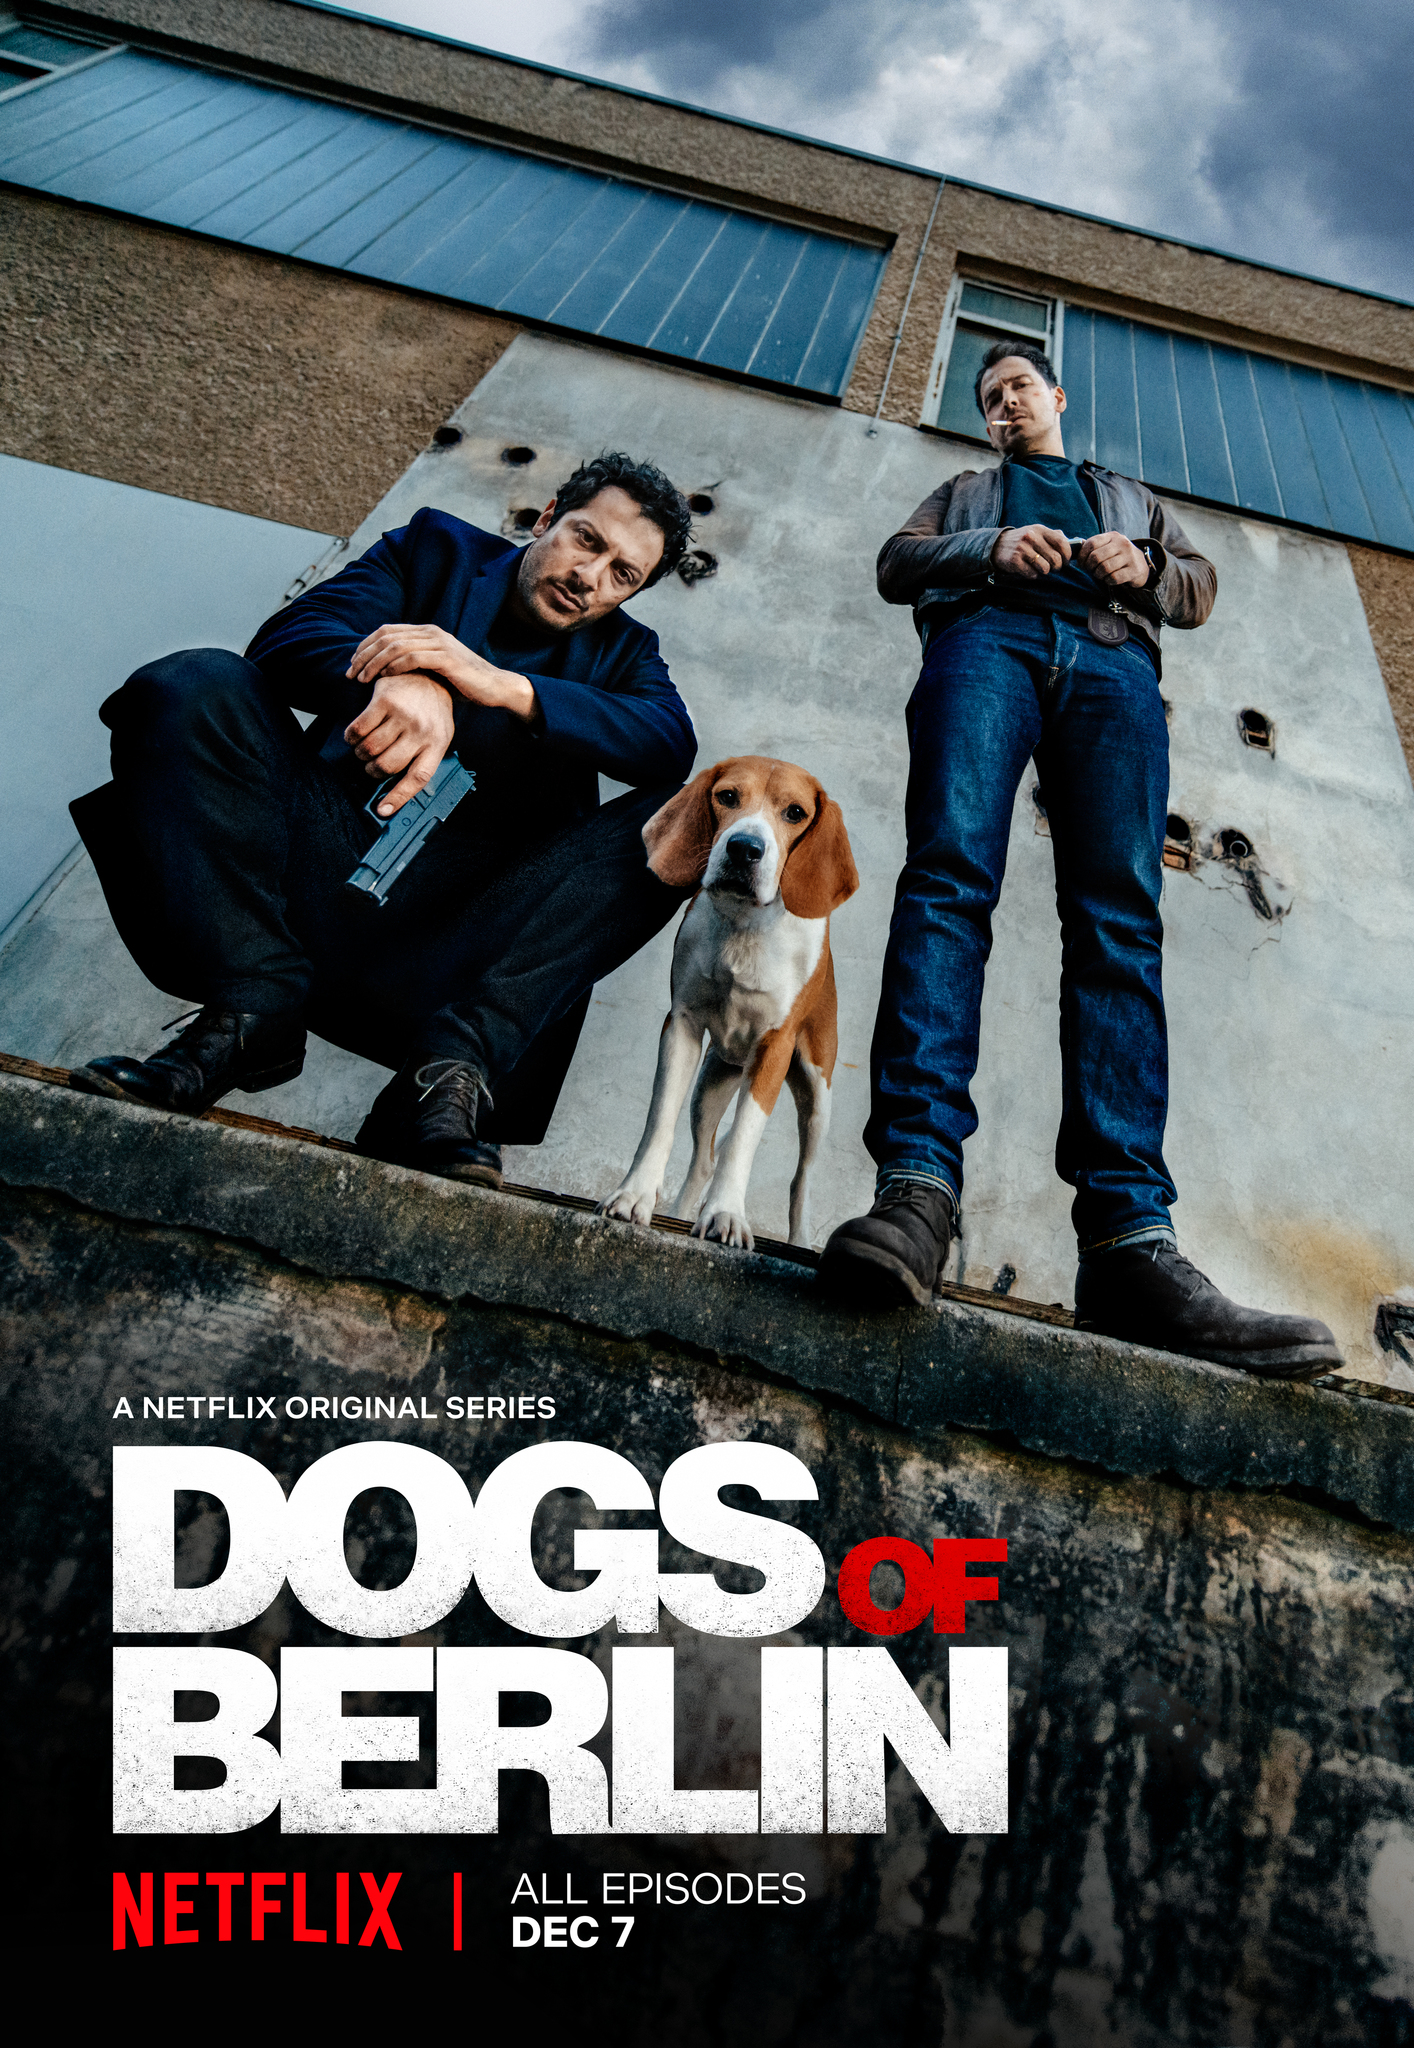 Dogs of Berlin (TV Series 2018– ) - IMDb